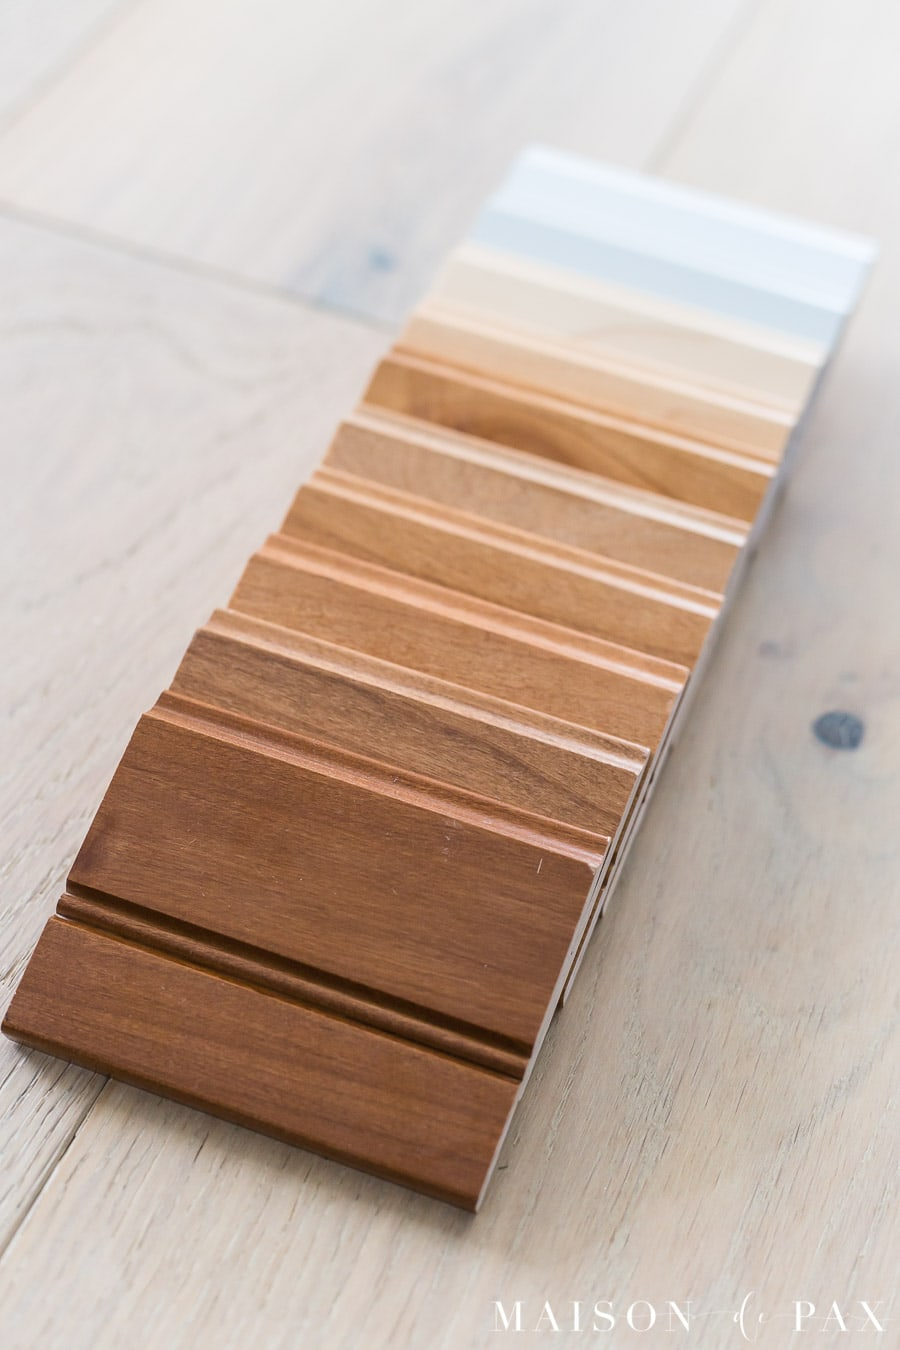 10 different cabinet finish samples ranging from medium wood to white